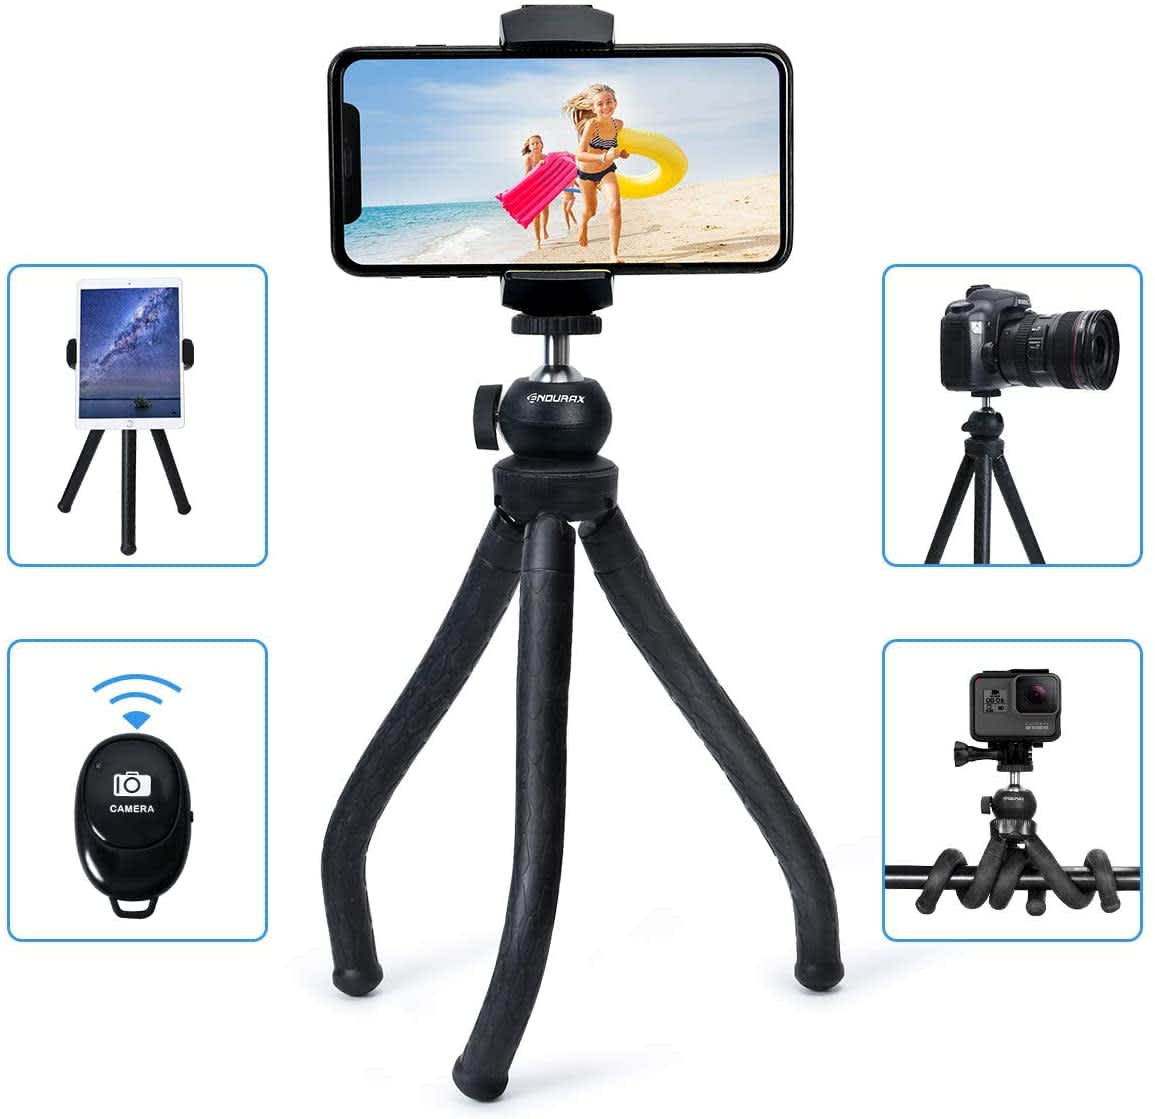 Endurax Flexible Phone Tripod